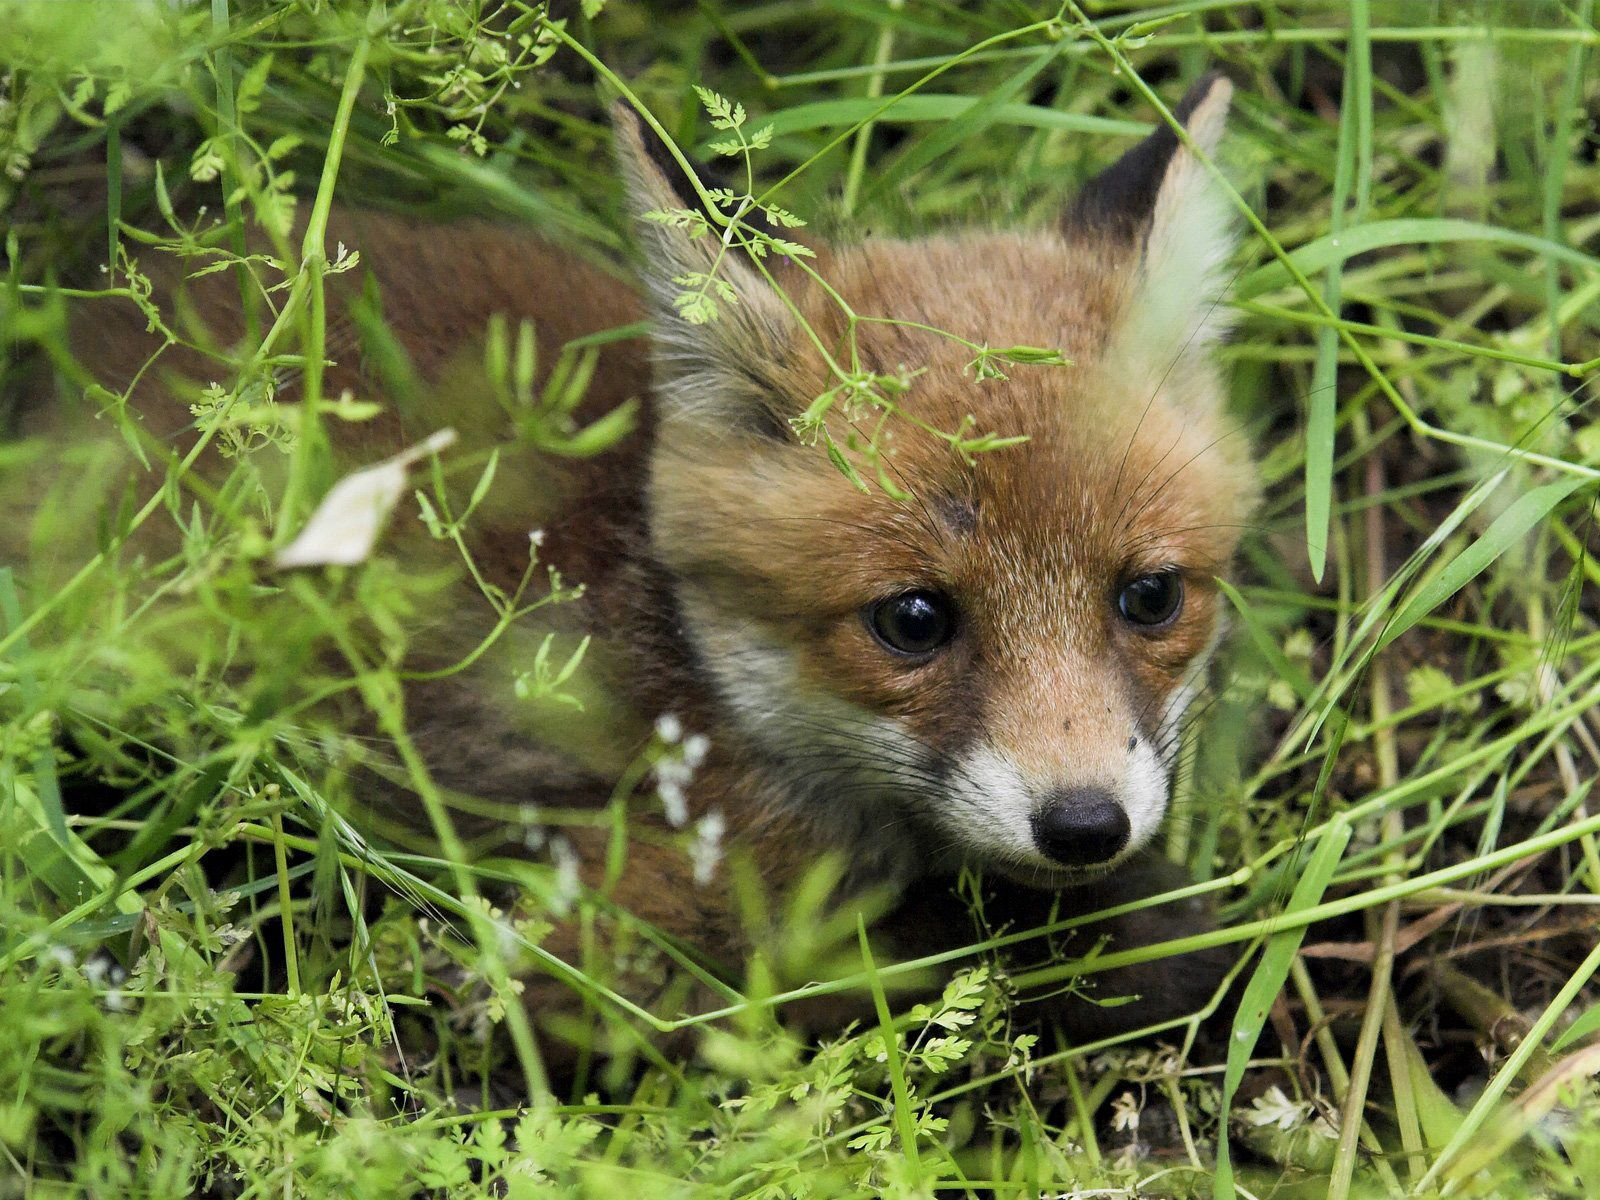 144528 download wallpaper Animals, Fox, Grass, Young, Joey screensavers and pictures for free